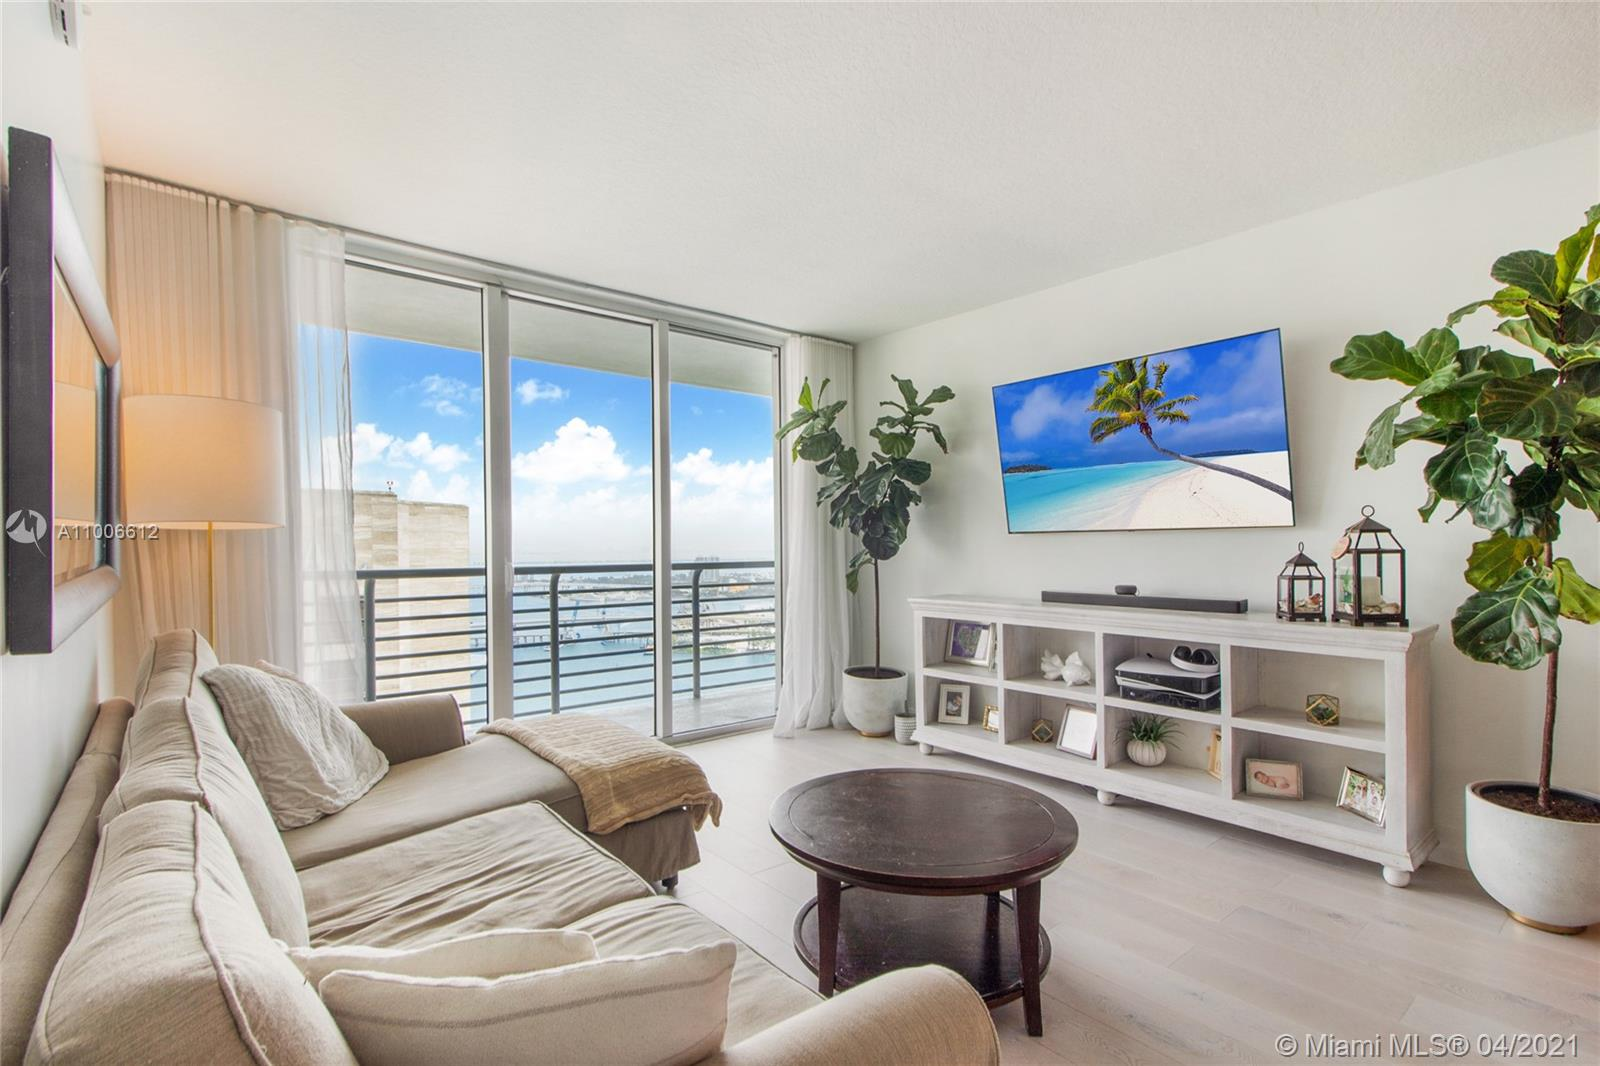 This high floor condo is perfectly situated on Biscayne Bay in downtown Miami. Interior features renovated bathrooms, large windows for natural light, wood floors and stainless steel appliances. Retreat outside to your large balcony overlooking the bay. Building features a waterfront walkway with access to Bay Front Park, two pools, sundeck, fitness center, two restaurants and is within walking distance to the American Airlines Arena, Metro Mover, Brickell City Center, The Shops at Bayside and Whole Foods.